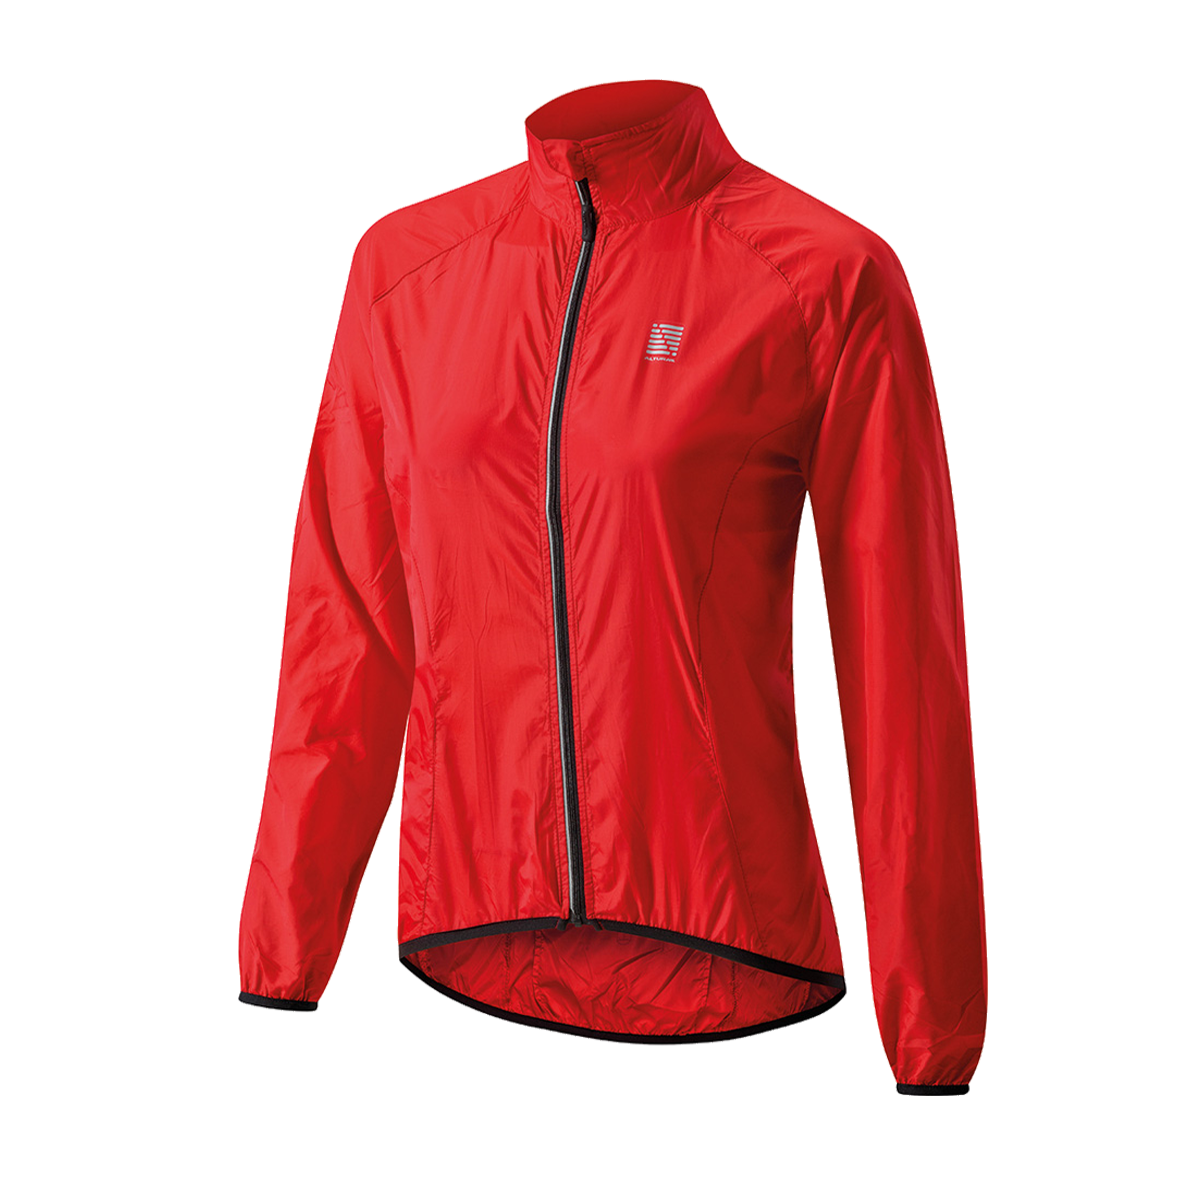 ALTURA WOMEN'S MICROLITE SHOWERPROOF JACKET 2016: RED/BLACK 10